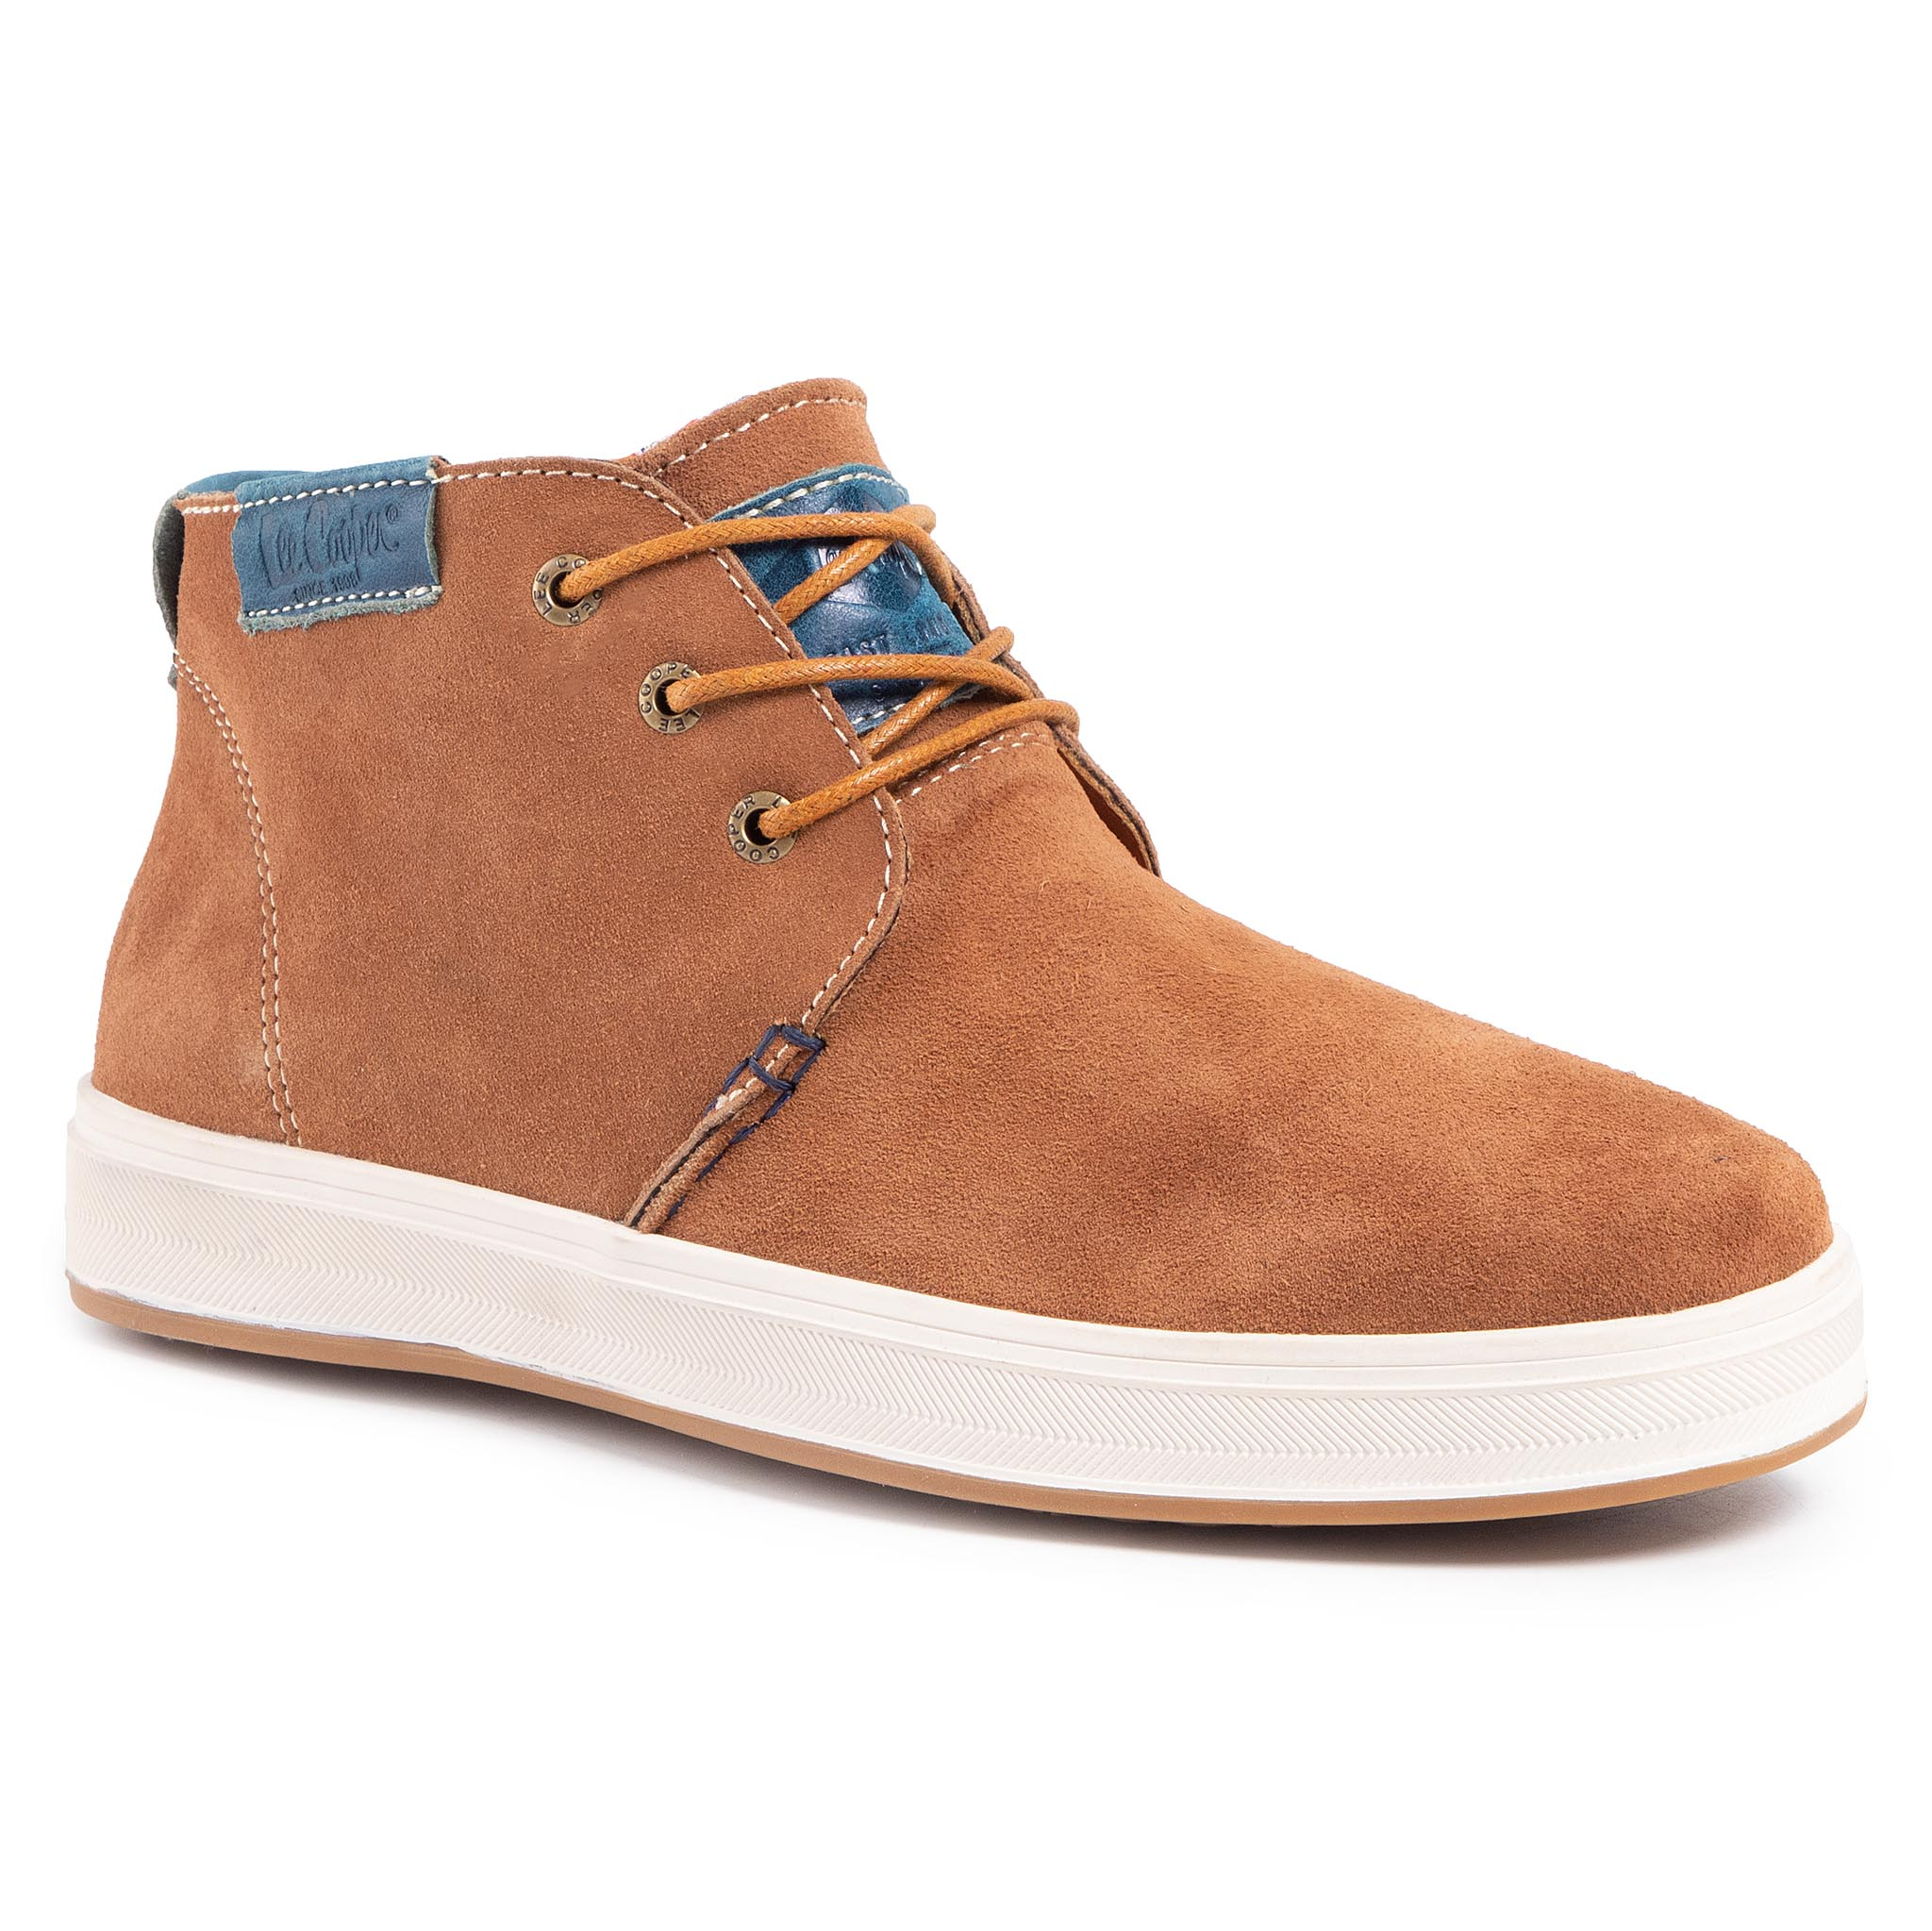 Ghete Lee Cooper - Lcj-18-523-091 Tan/Navy imagine